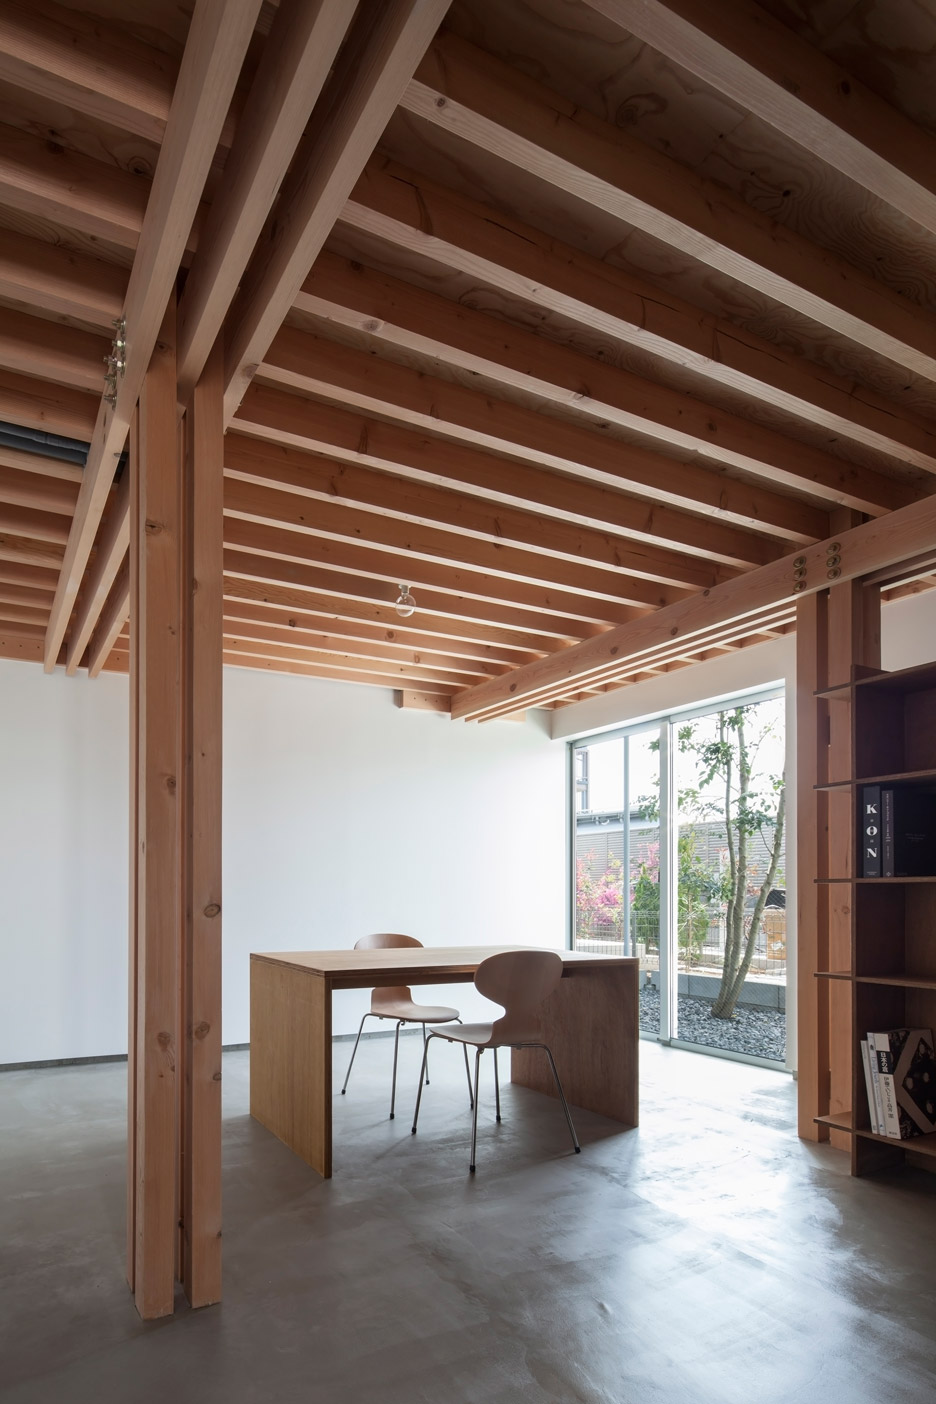 FT Architects 4 Columns house features a traditional timber frame